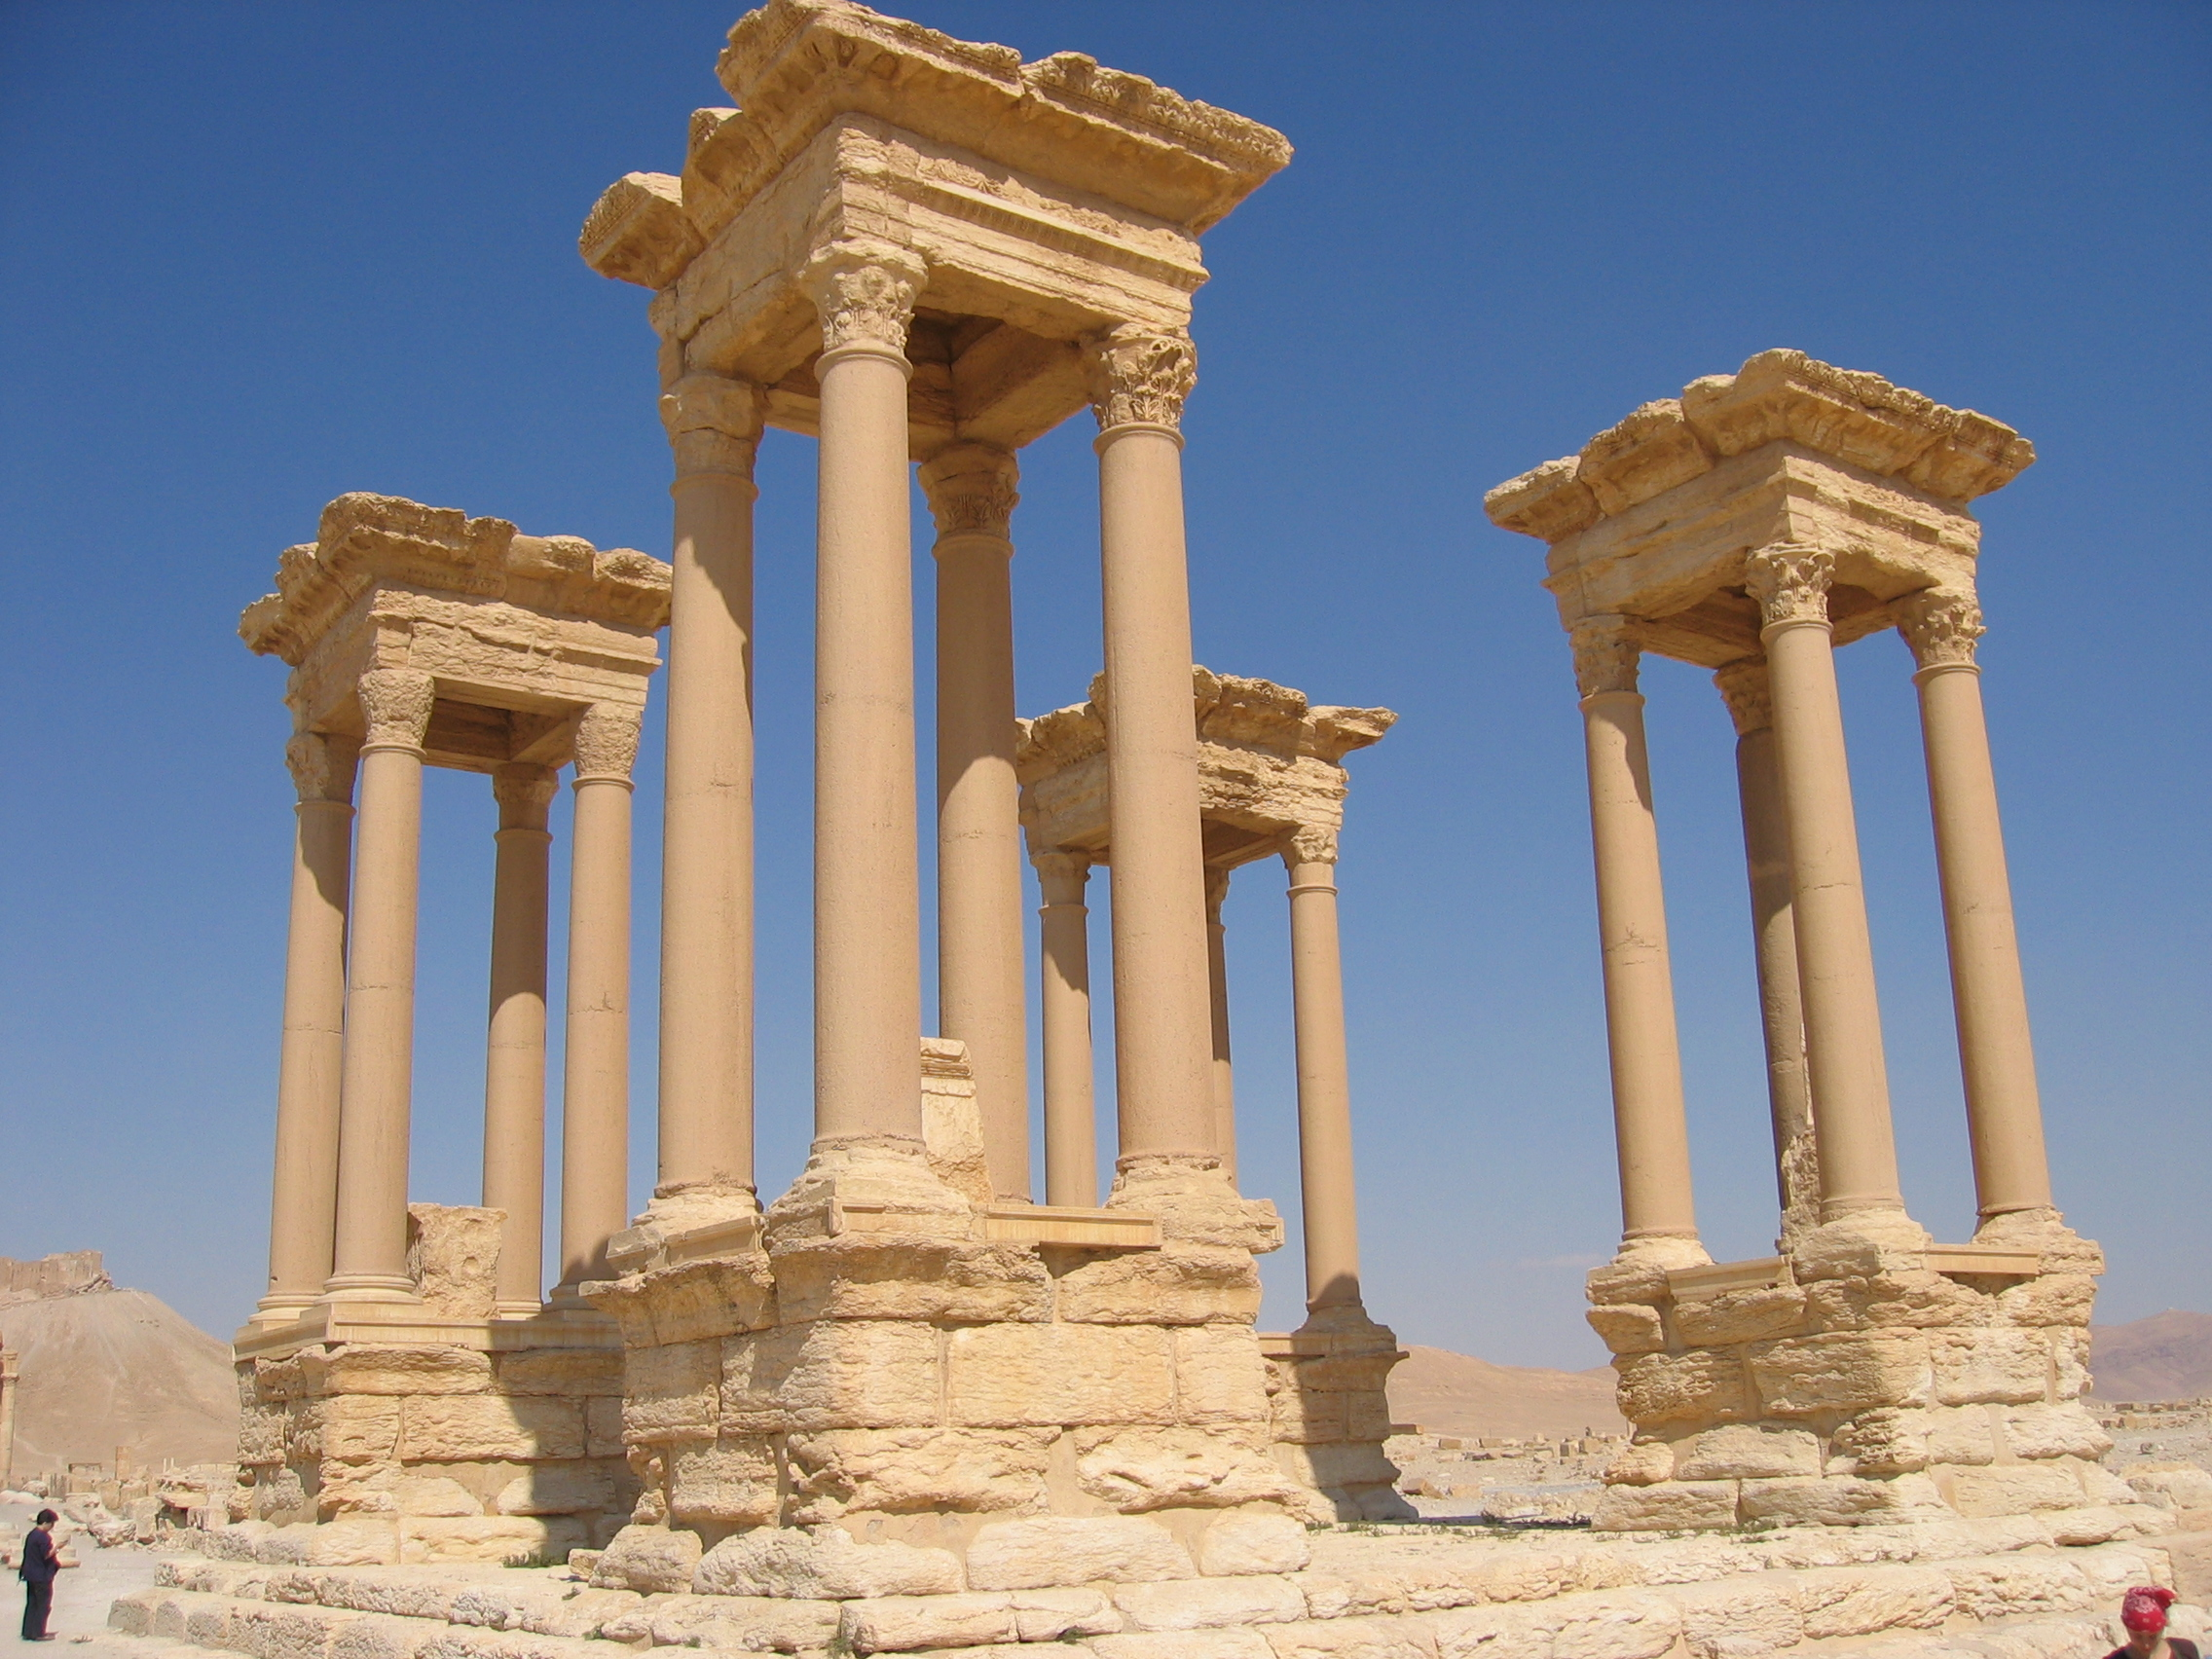 http://upload.wikimedia.org/wikipedia/commons/f/f9/Tetrapylon_in_the_Great_Collonade_Street_Palmyra_Syria.JPG